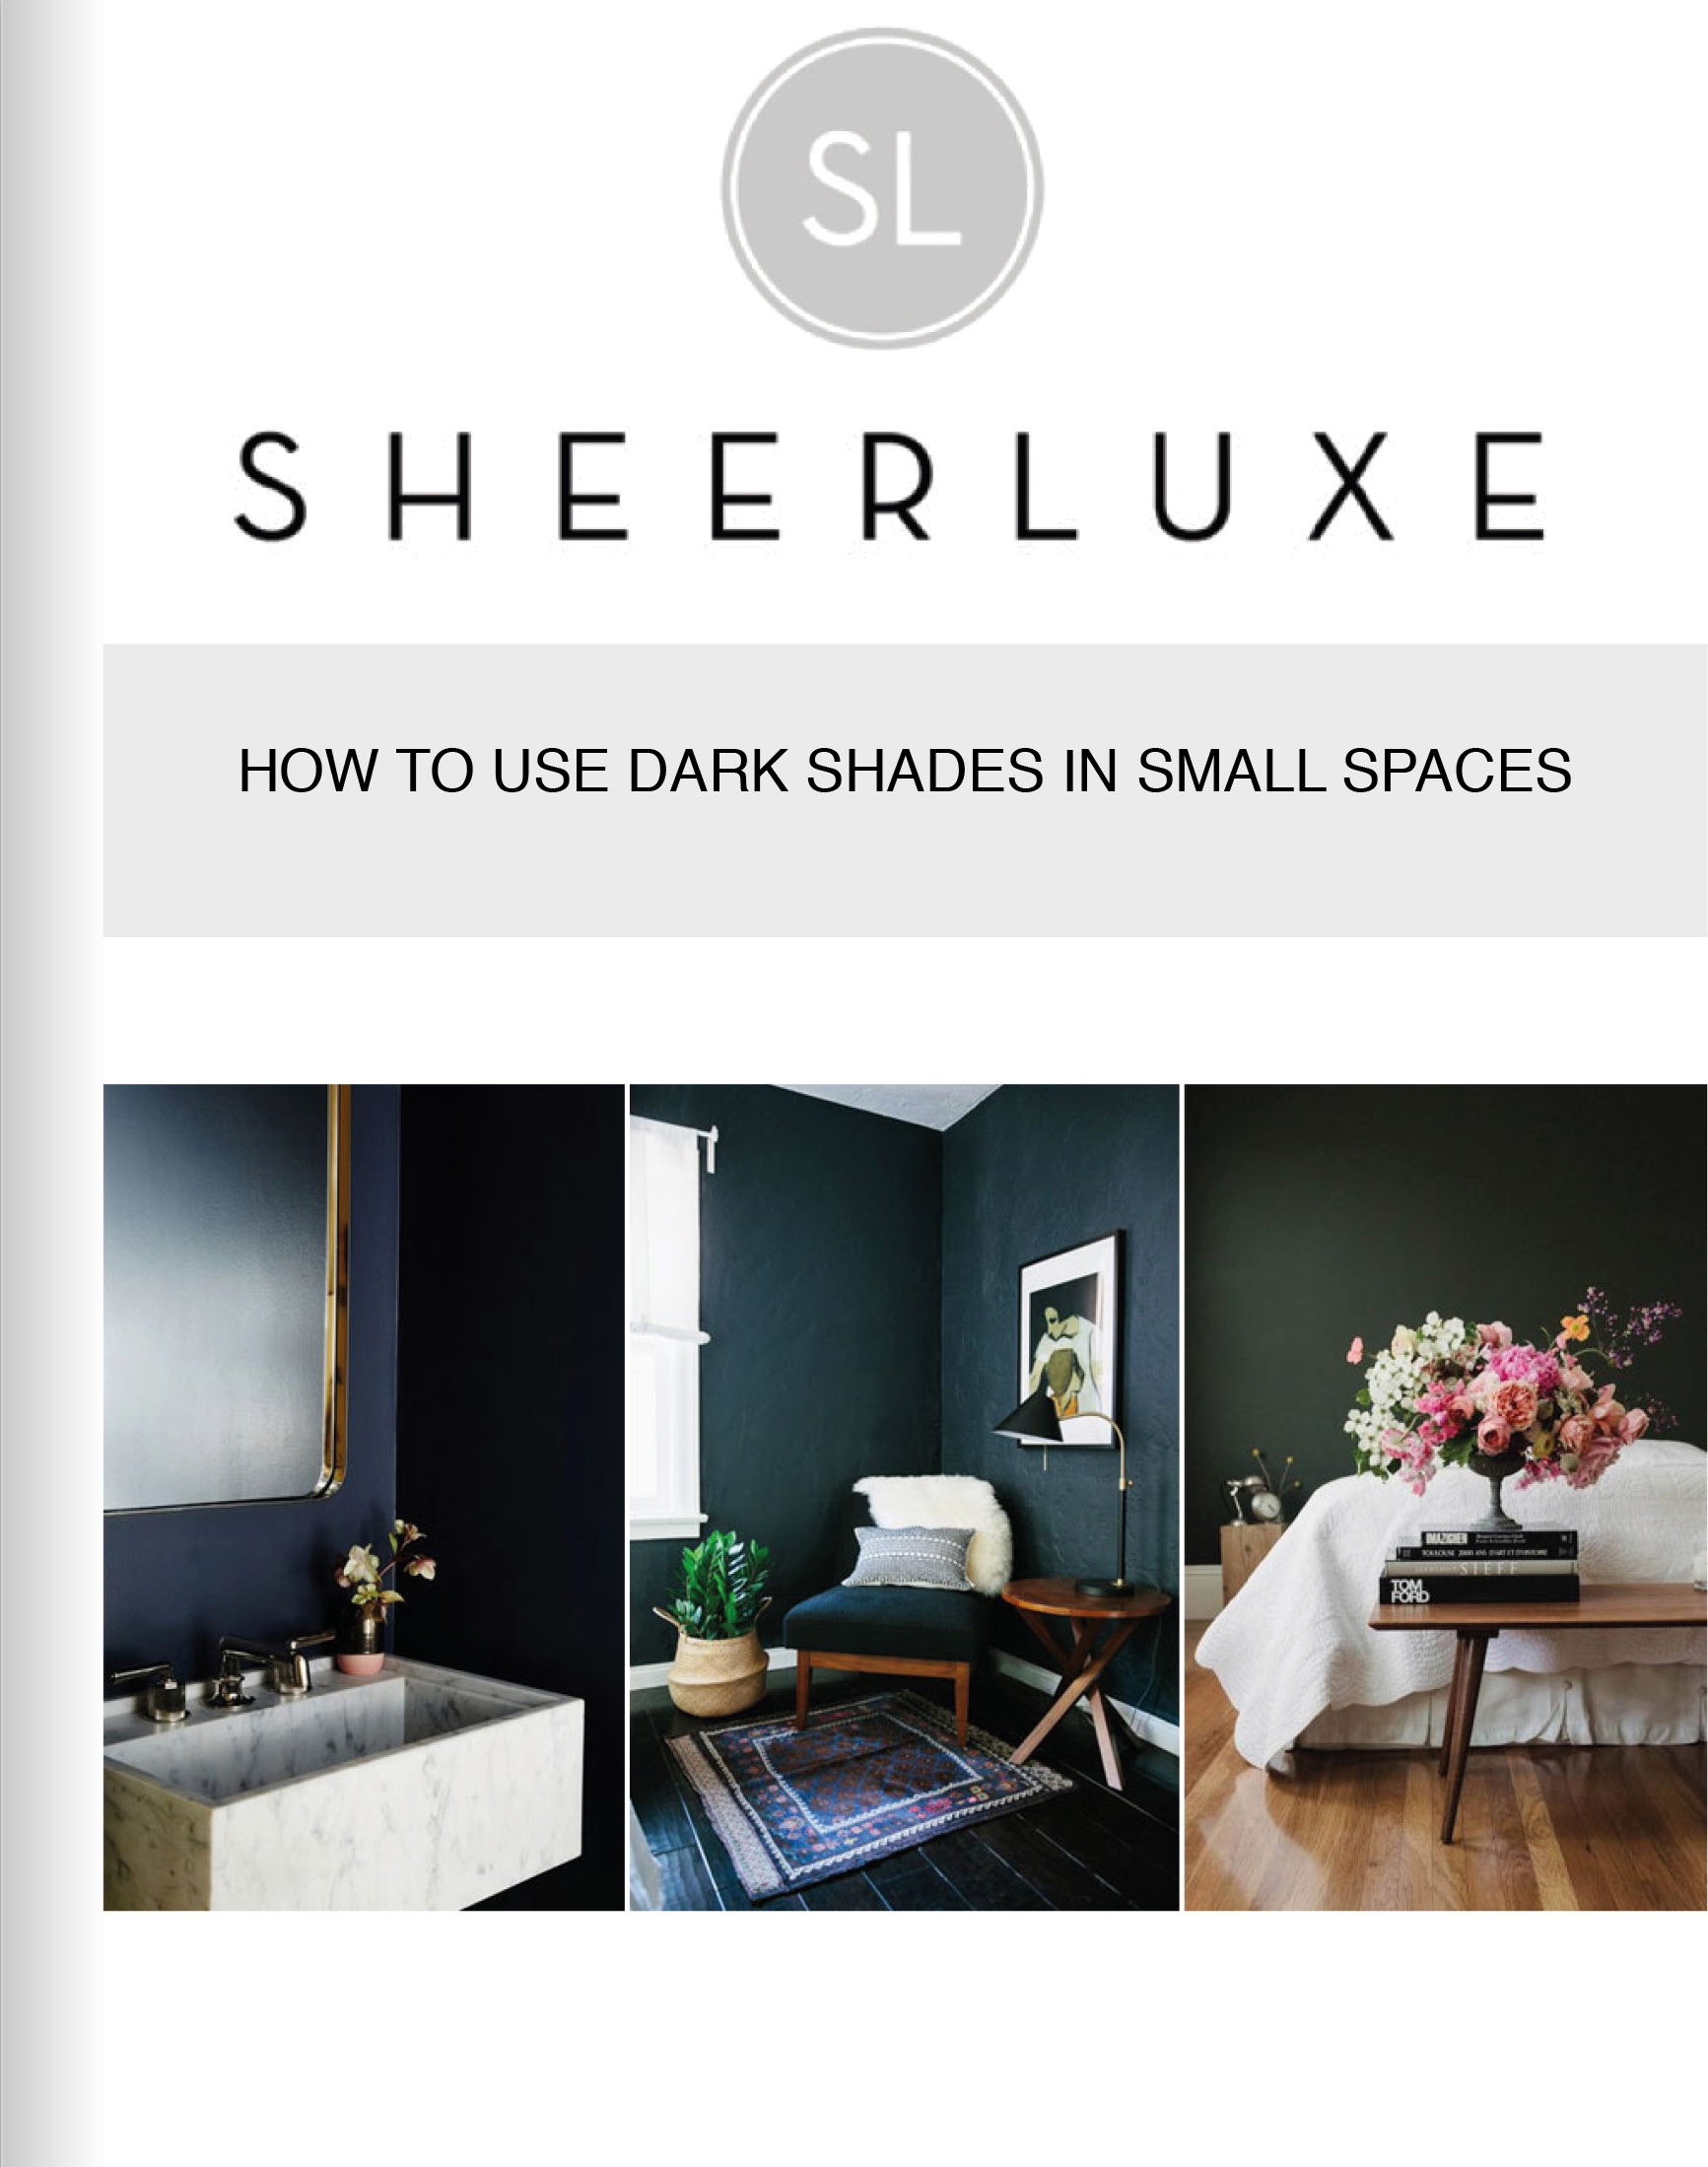 Sheerluxe+press+page.jpg